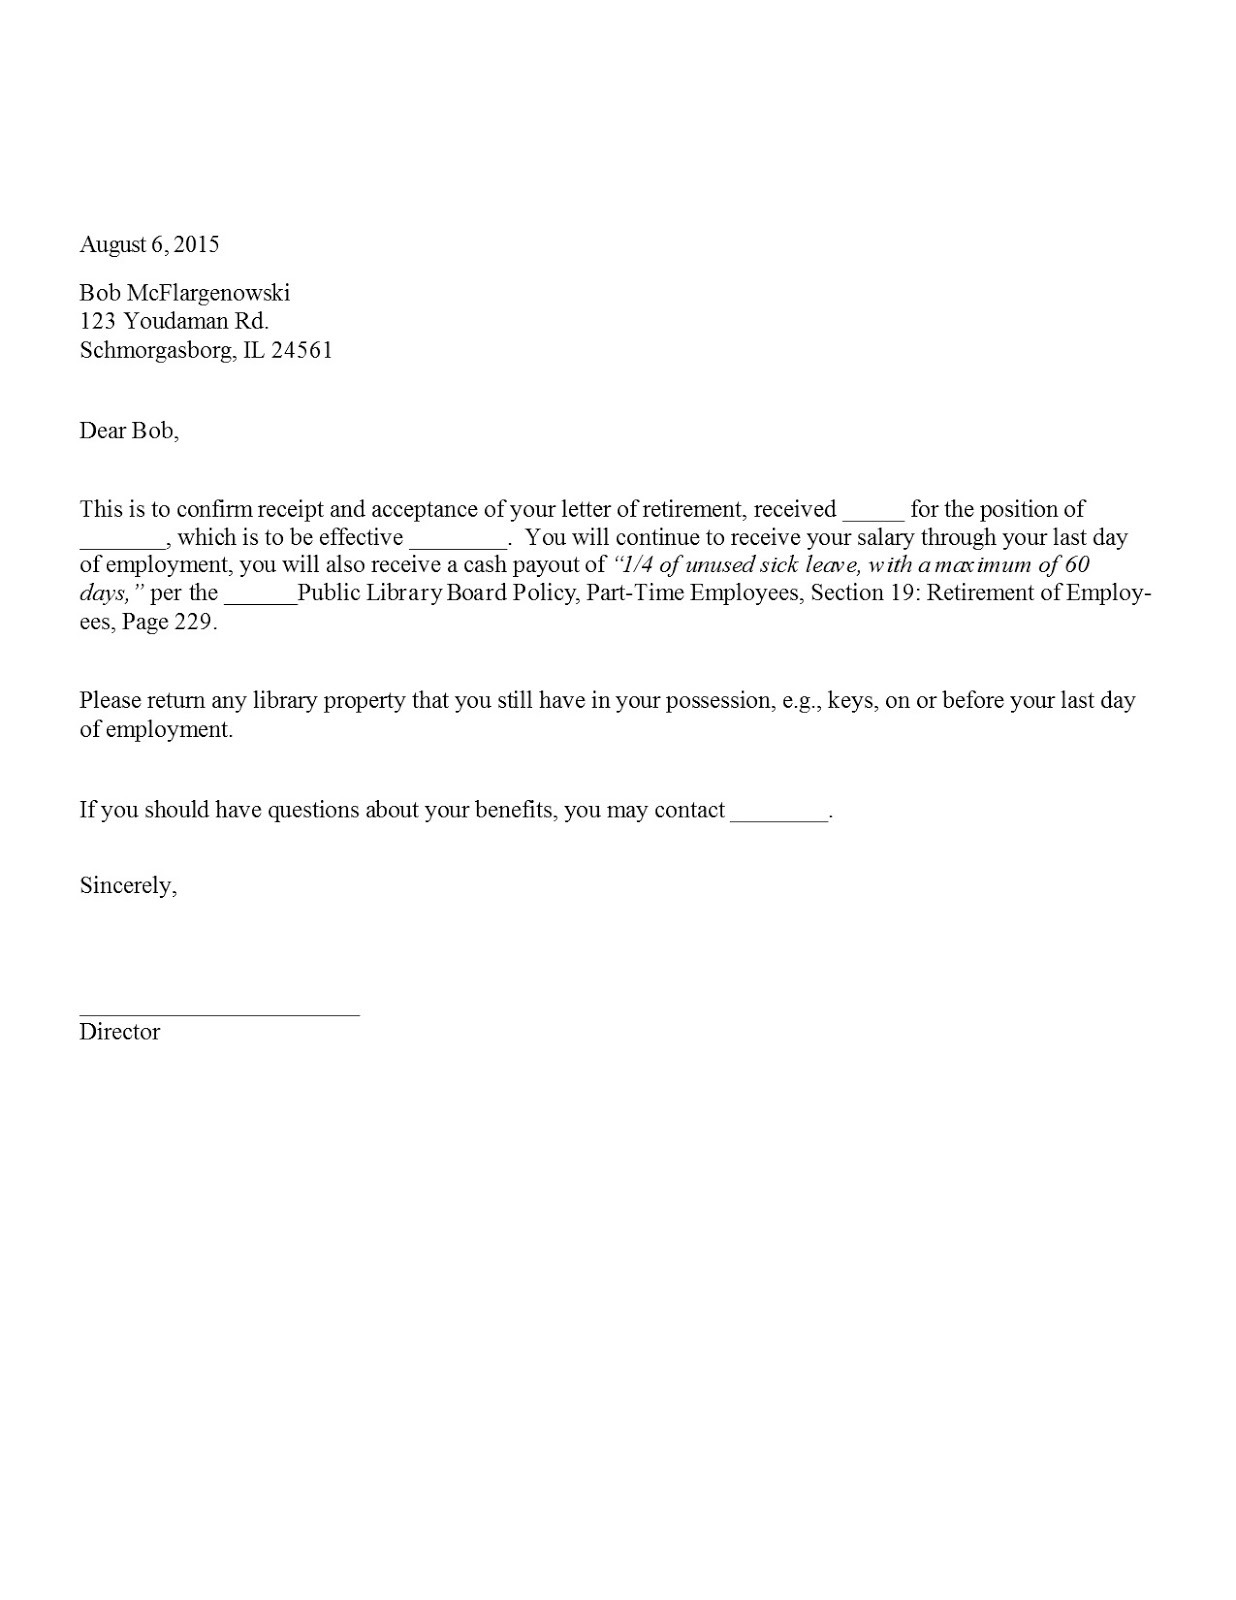 Samples Of Retirement Letters To Employer Kays Makehauk Co